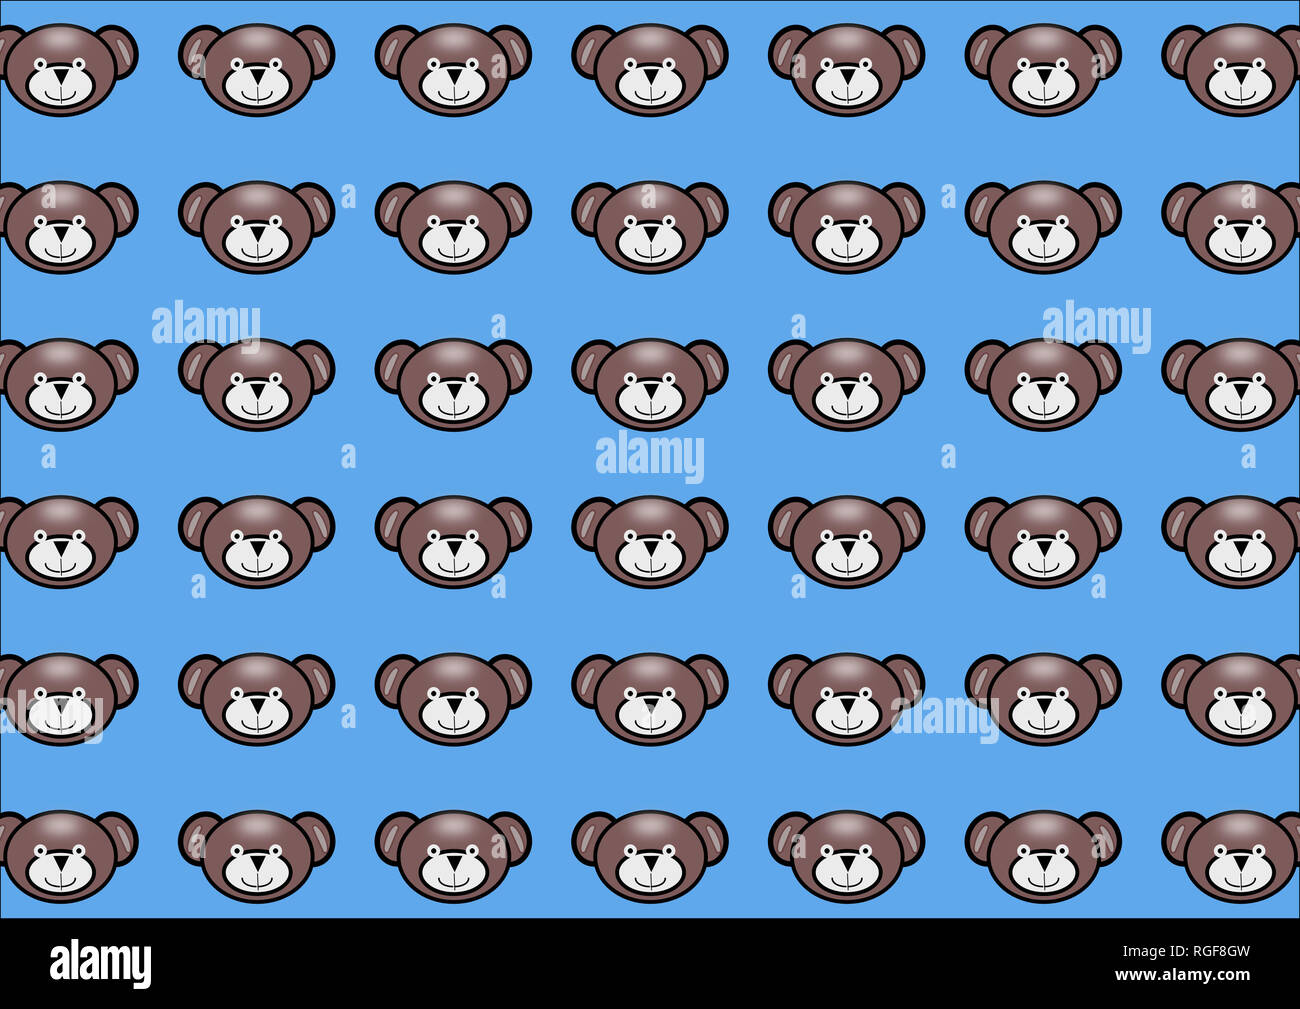 Teddy Bear Icons Blue Background Cartoon Style Pattern For